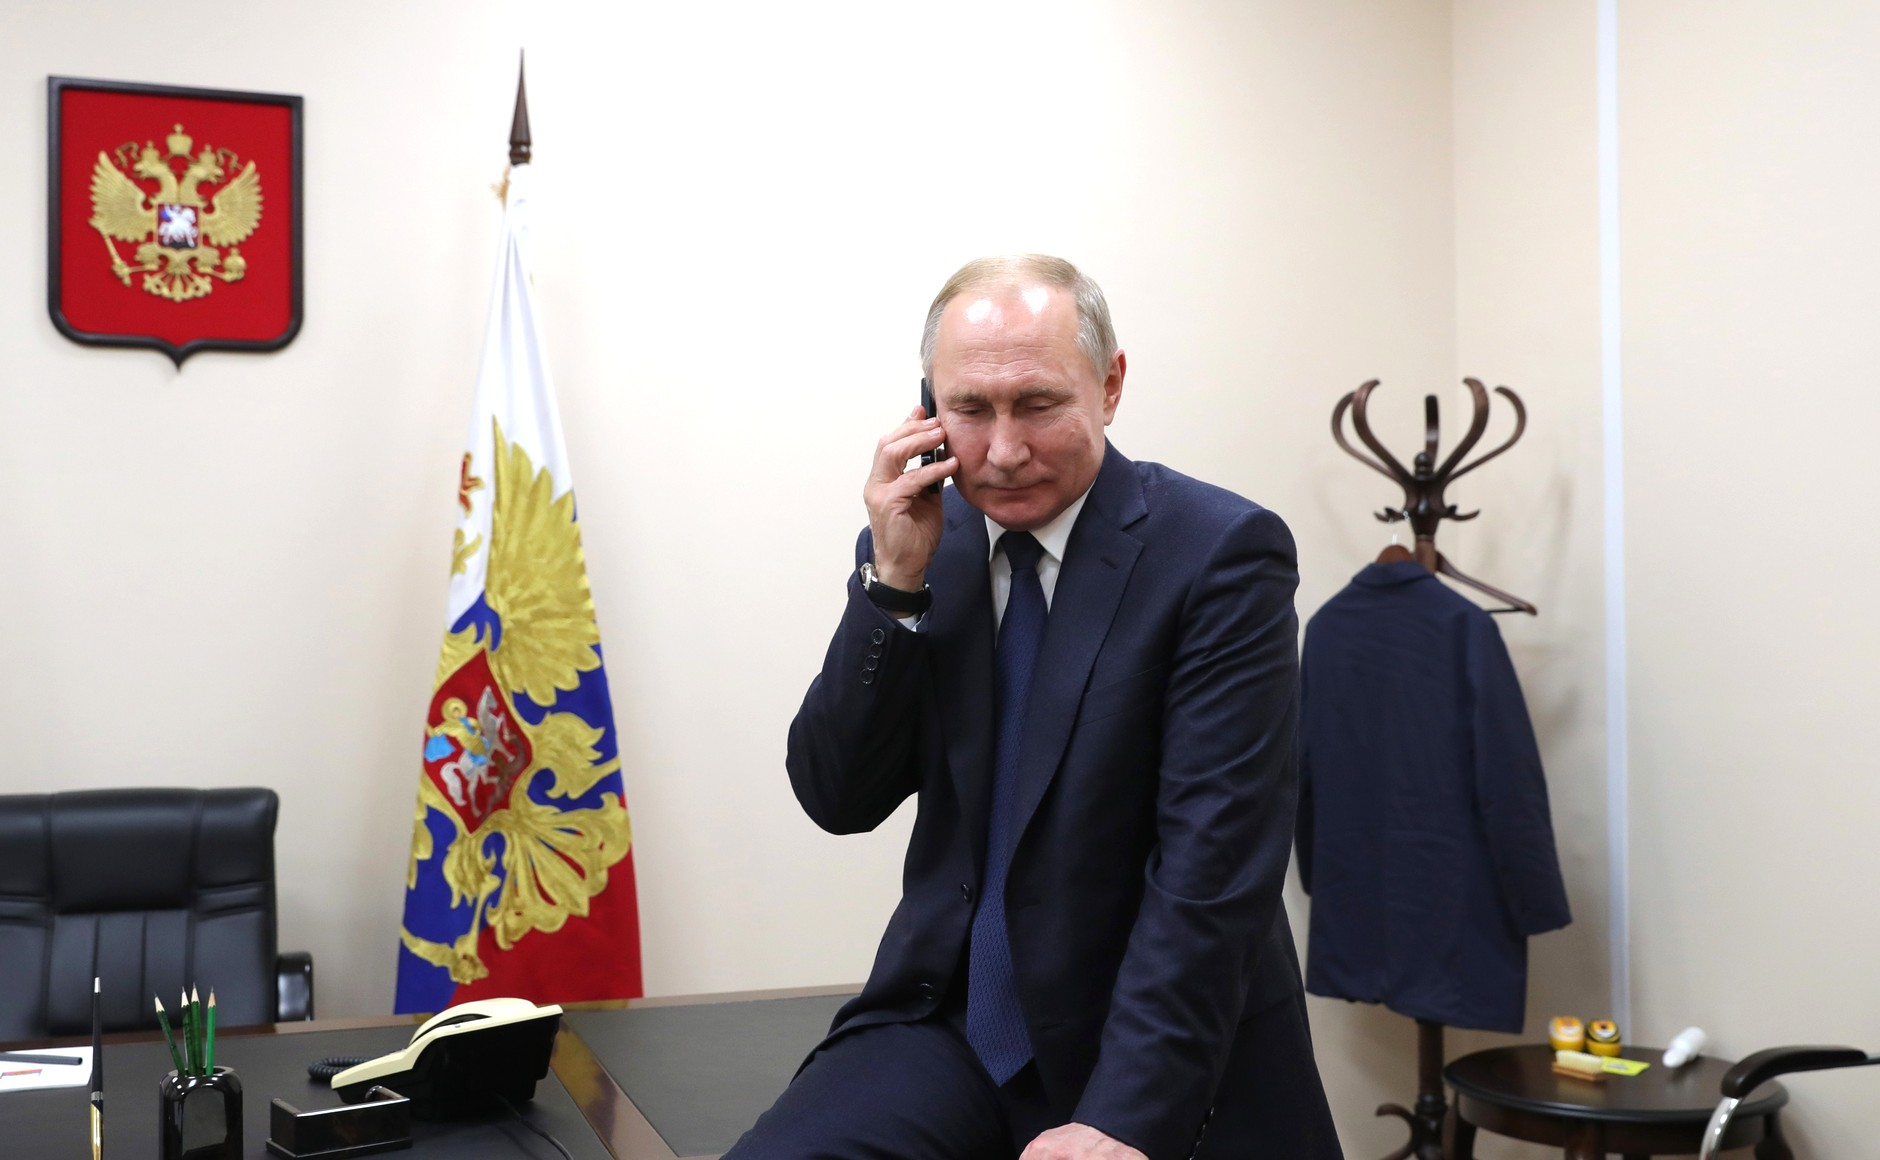 Putin Uses Birthday Phone Call to Invite Lukashenko to Moscow